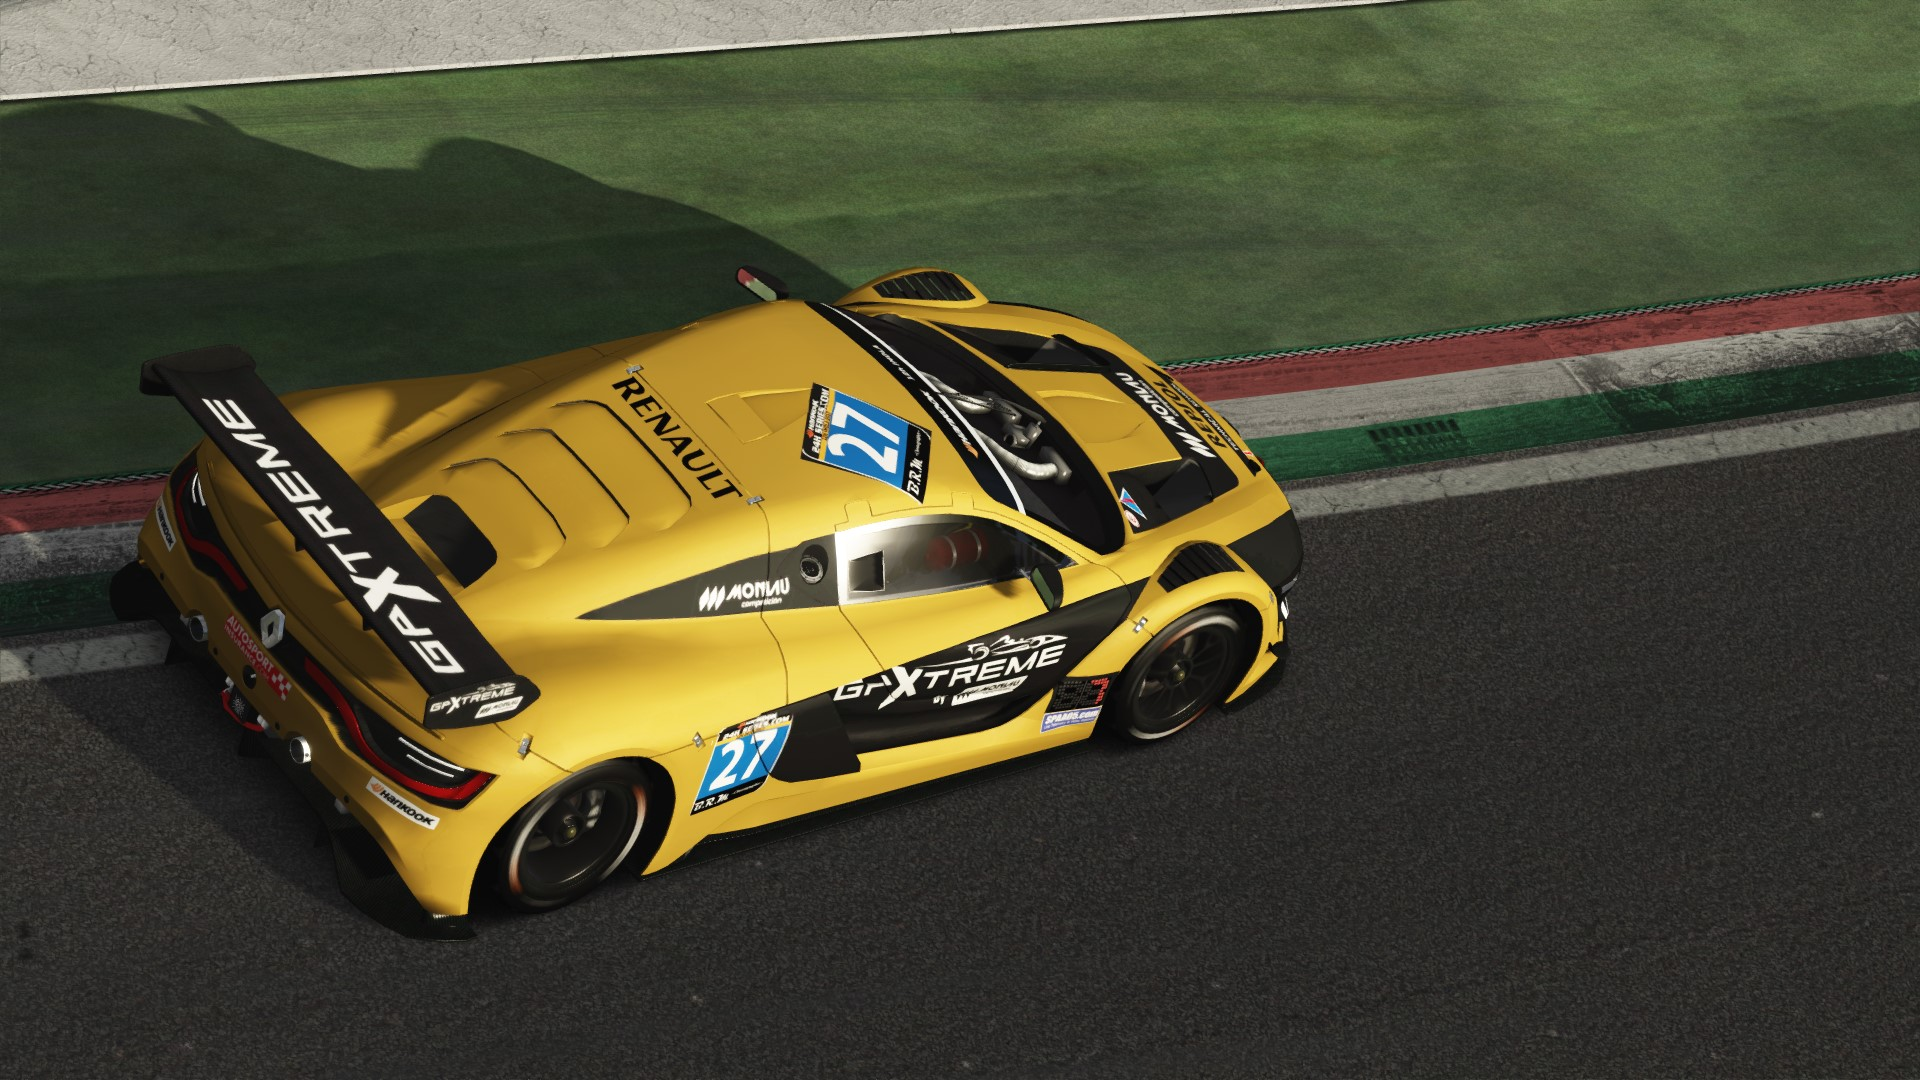 Screenshot_renault_rs_01_imola_4-11-117-13-38-50.jpg